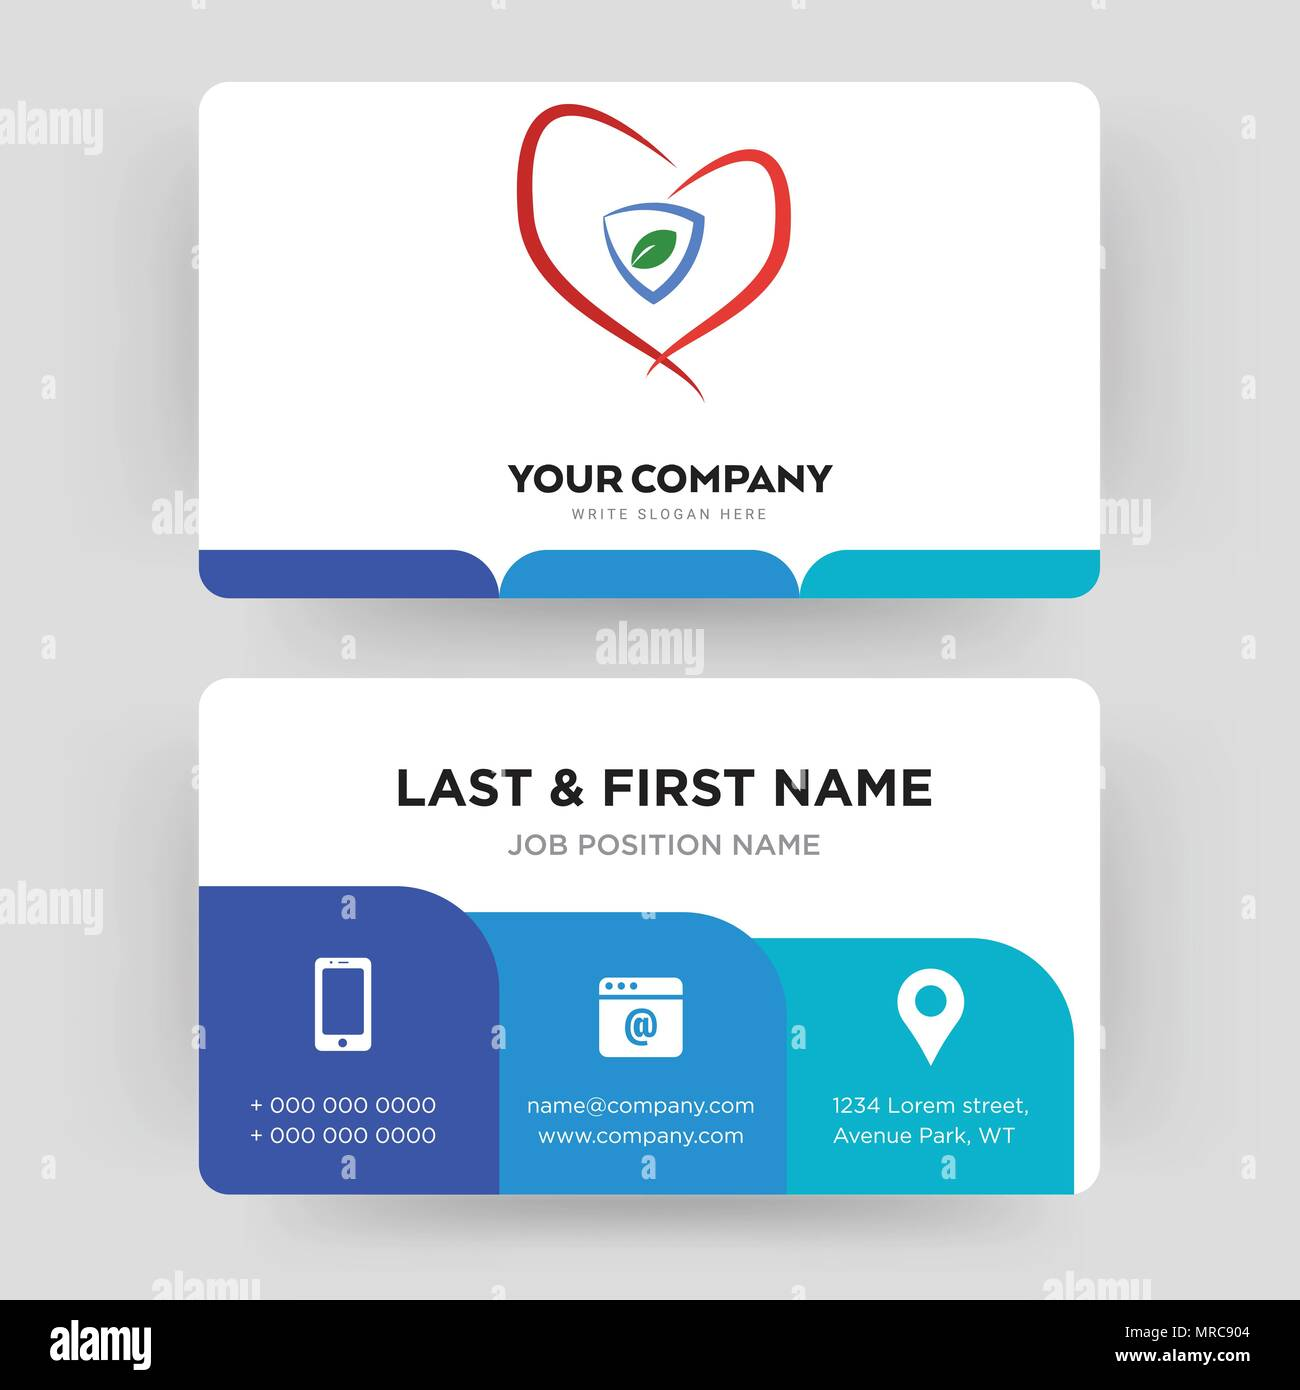 Insurance business card design template visiting for your company insurance business card design template visiting for your company modern creative and clean identity card vector colourmoves